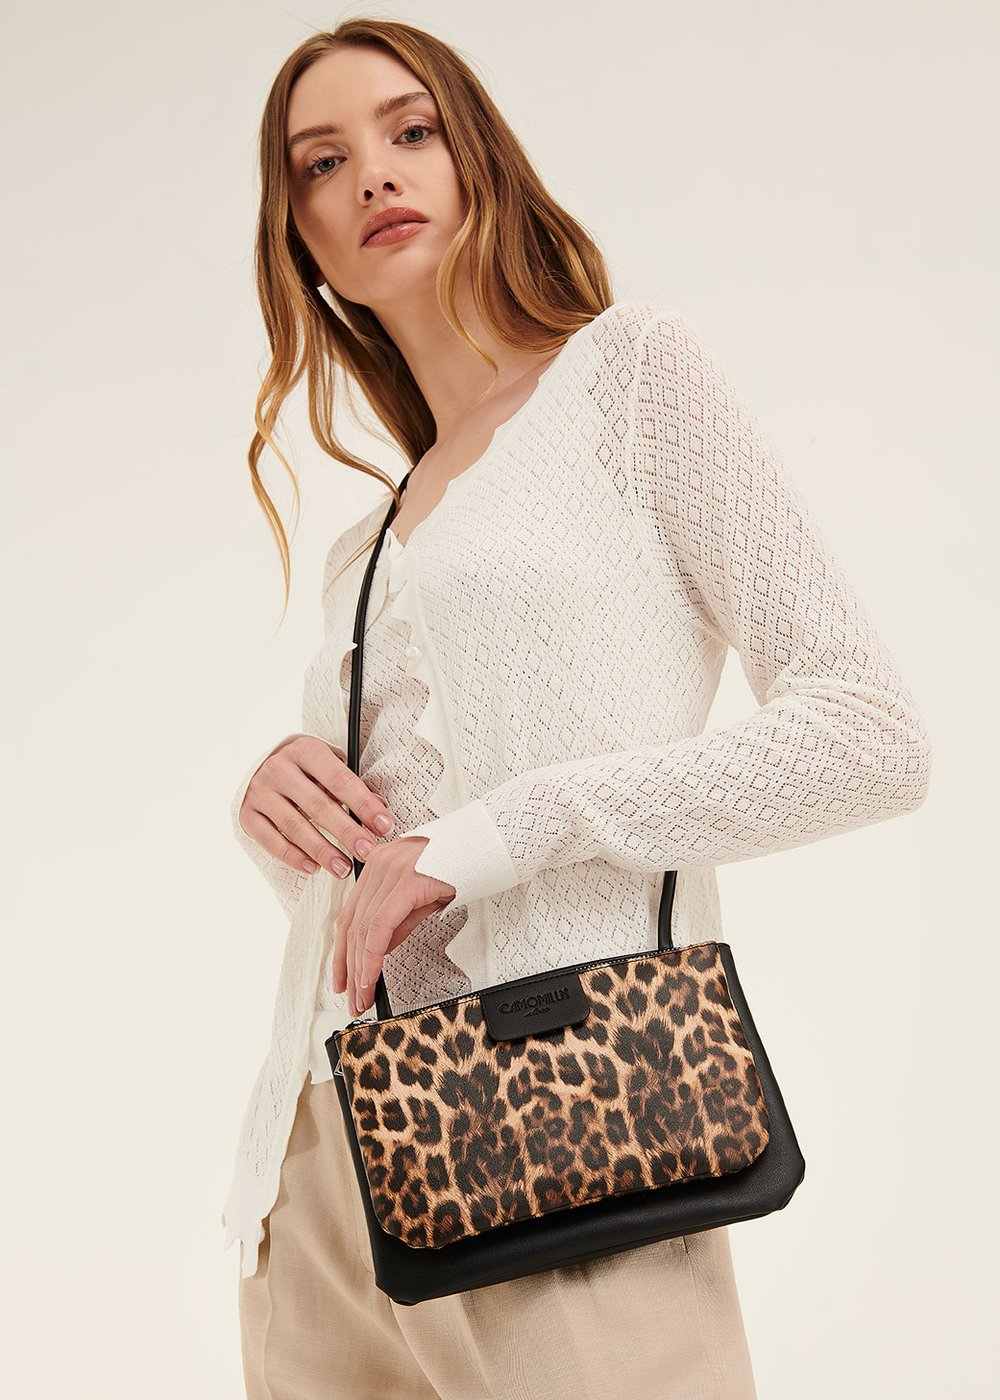 Tonga animal print clutch bag with shoulder strap - Safari Animalier - Woman